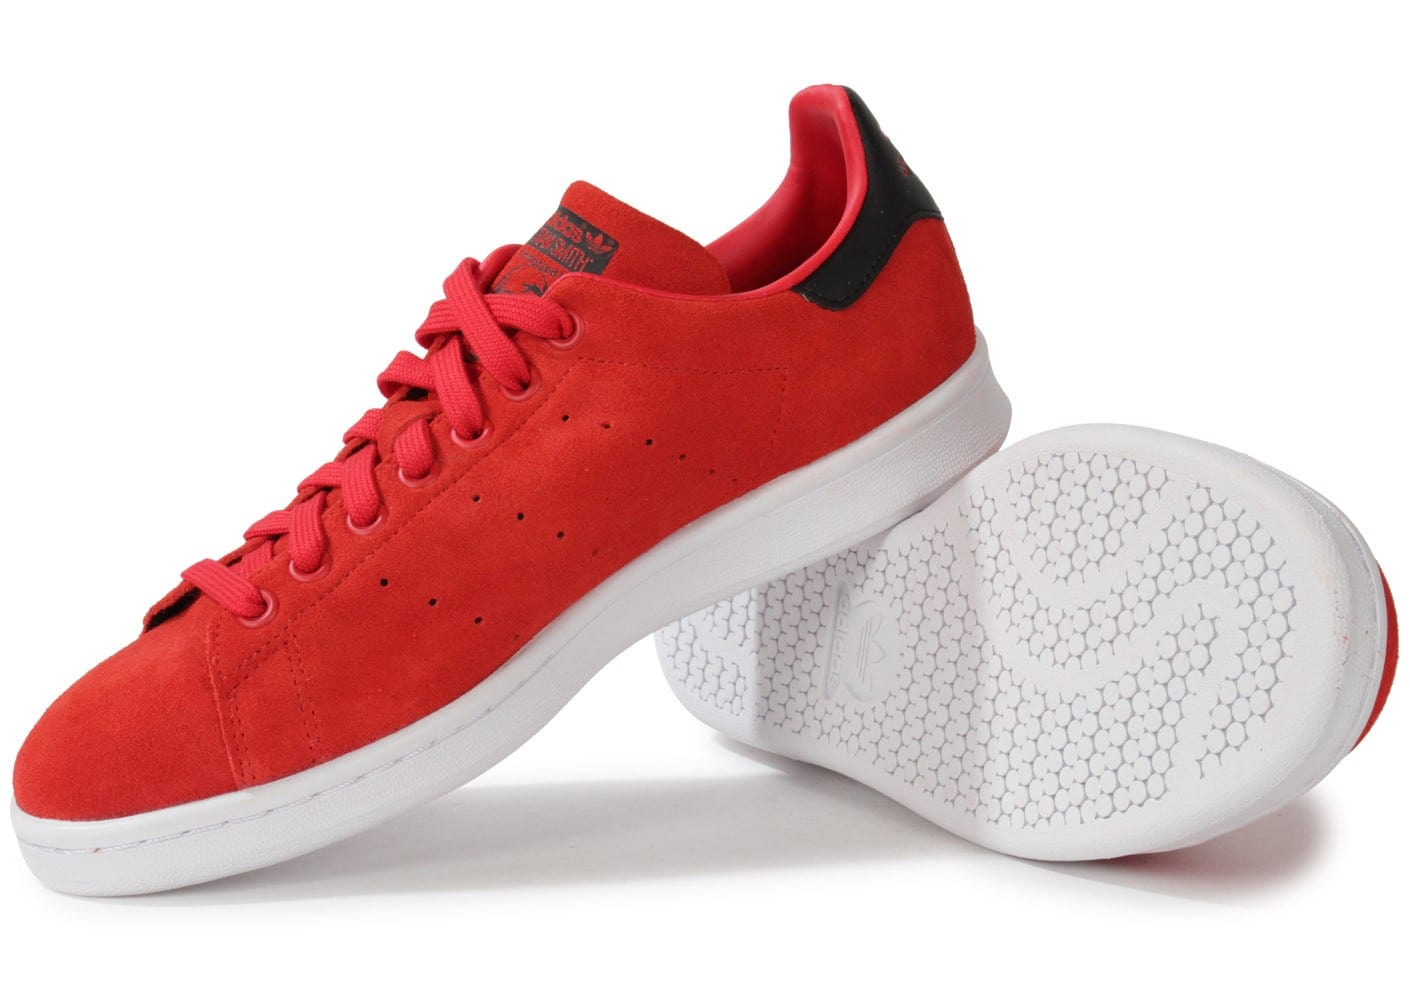 adidas stan smith suede rouge,Adidas Stan Smith Suede Triple